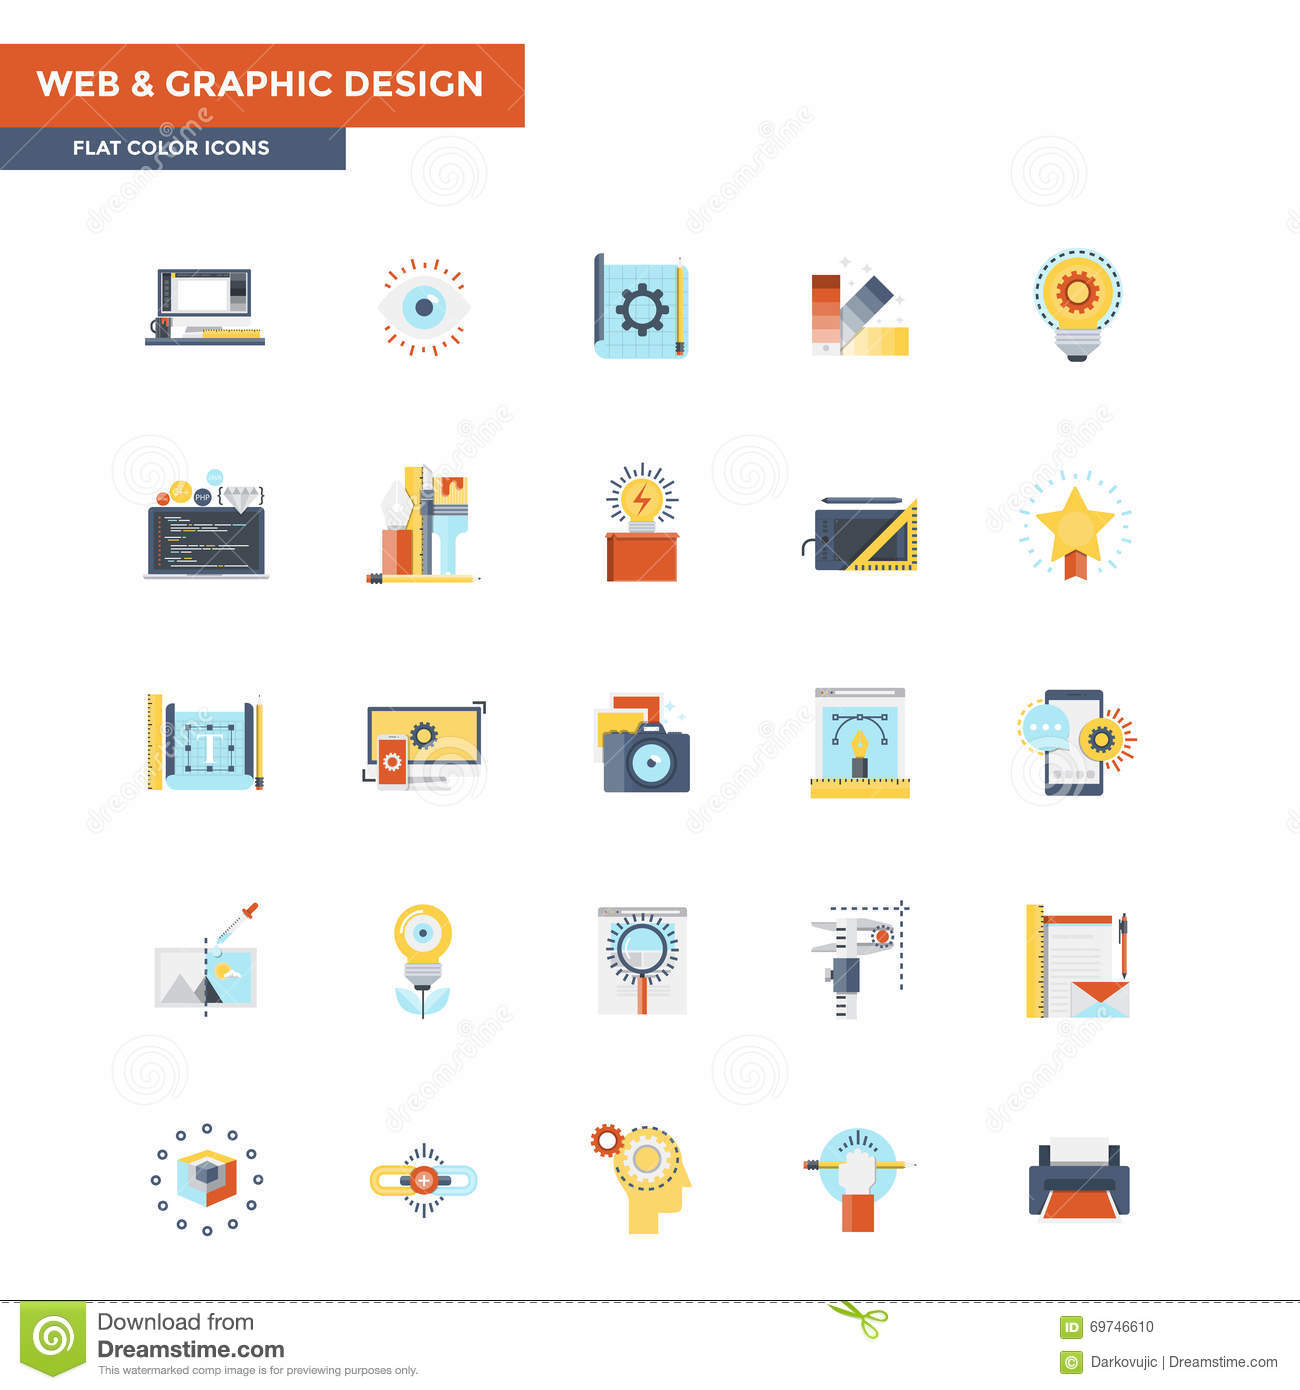 Flat color icons web and graphic design stock vector for Easy app design